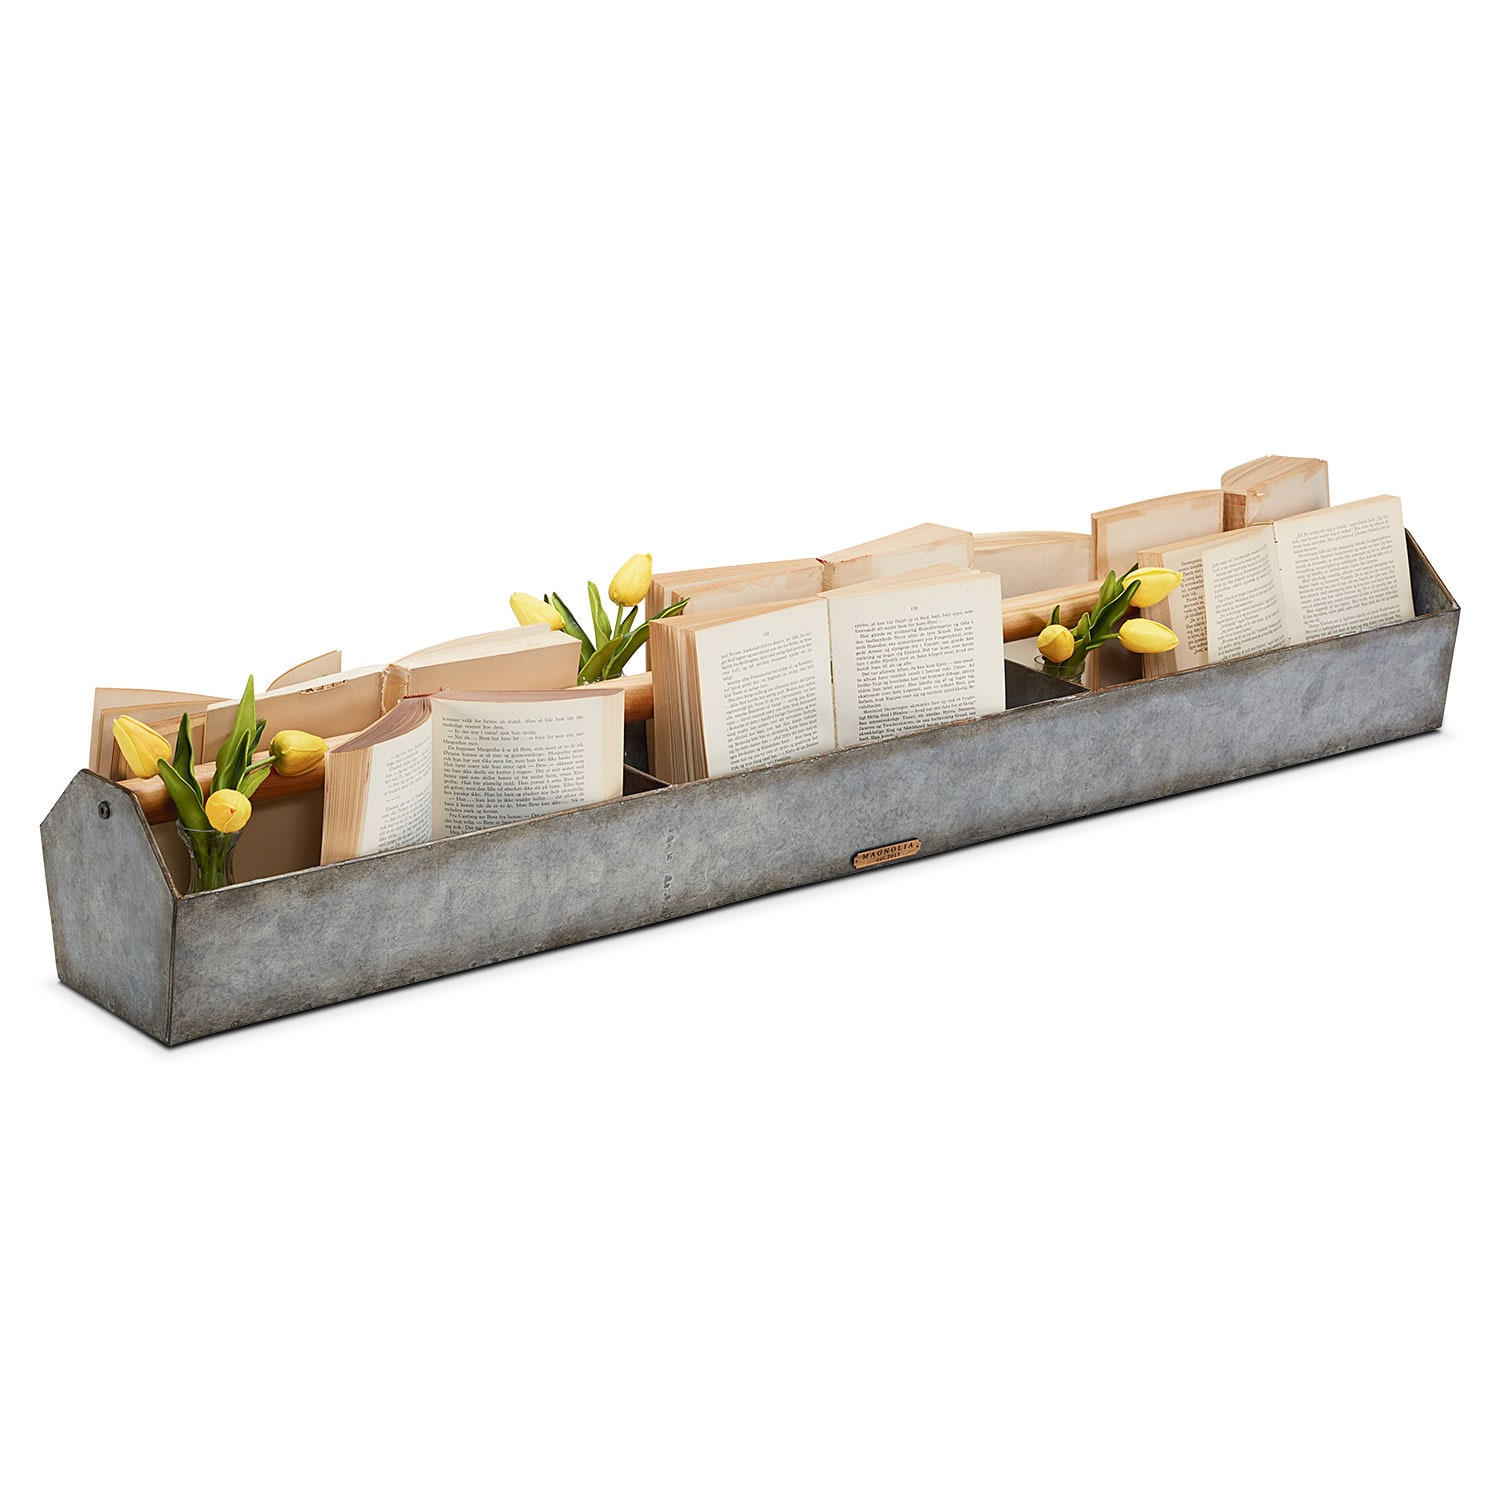 Home Accessories - Metal Trough with Wood Handle